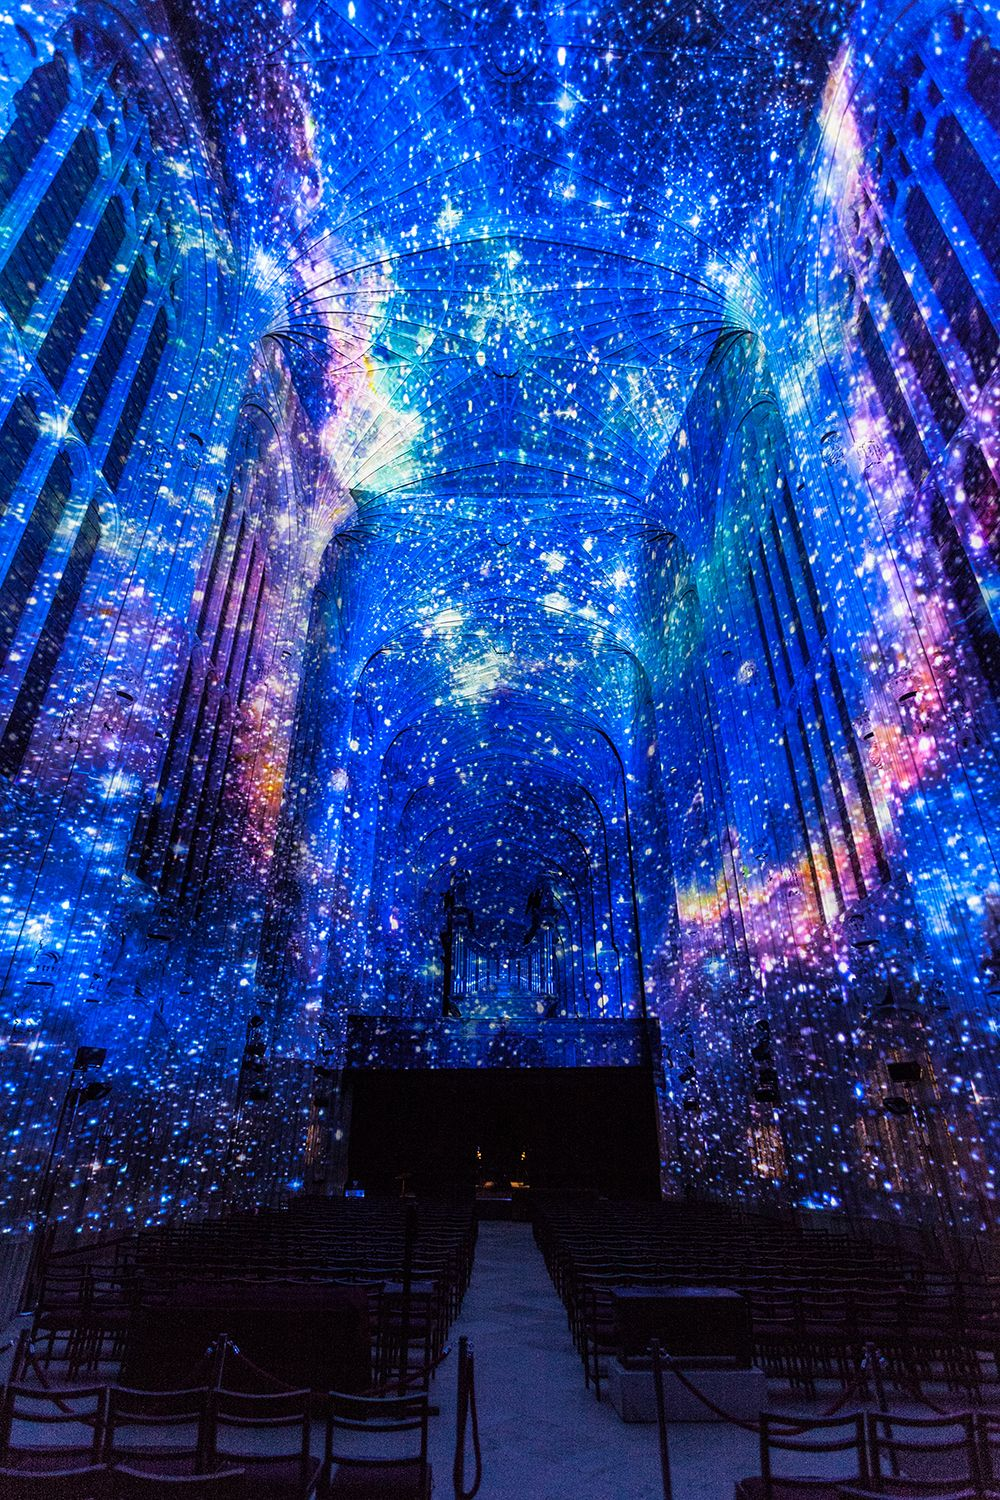 Starry constellations illuminate ceiling of Cambridge's famous gothic chapel #lightartinstallation